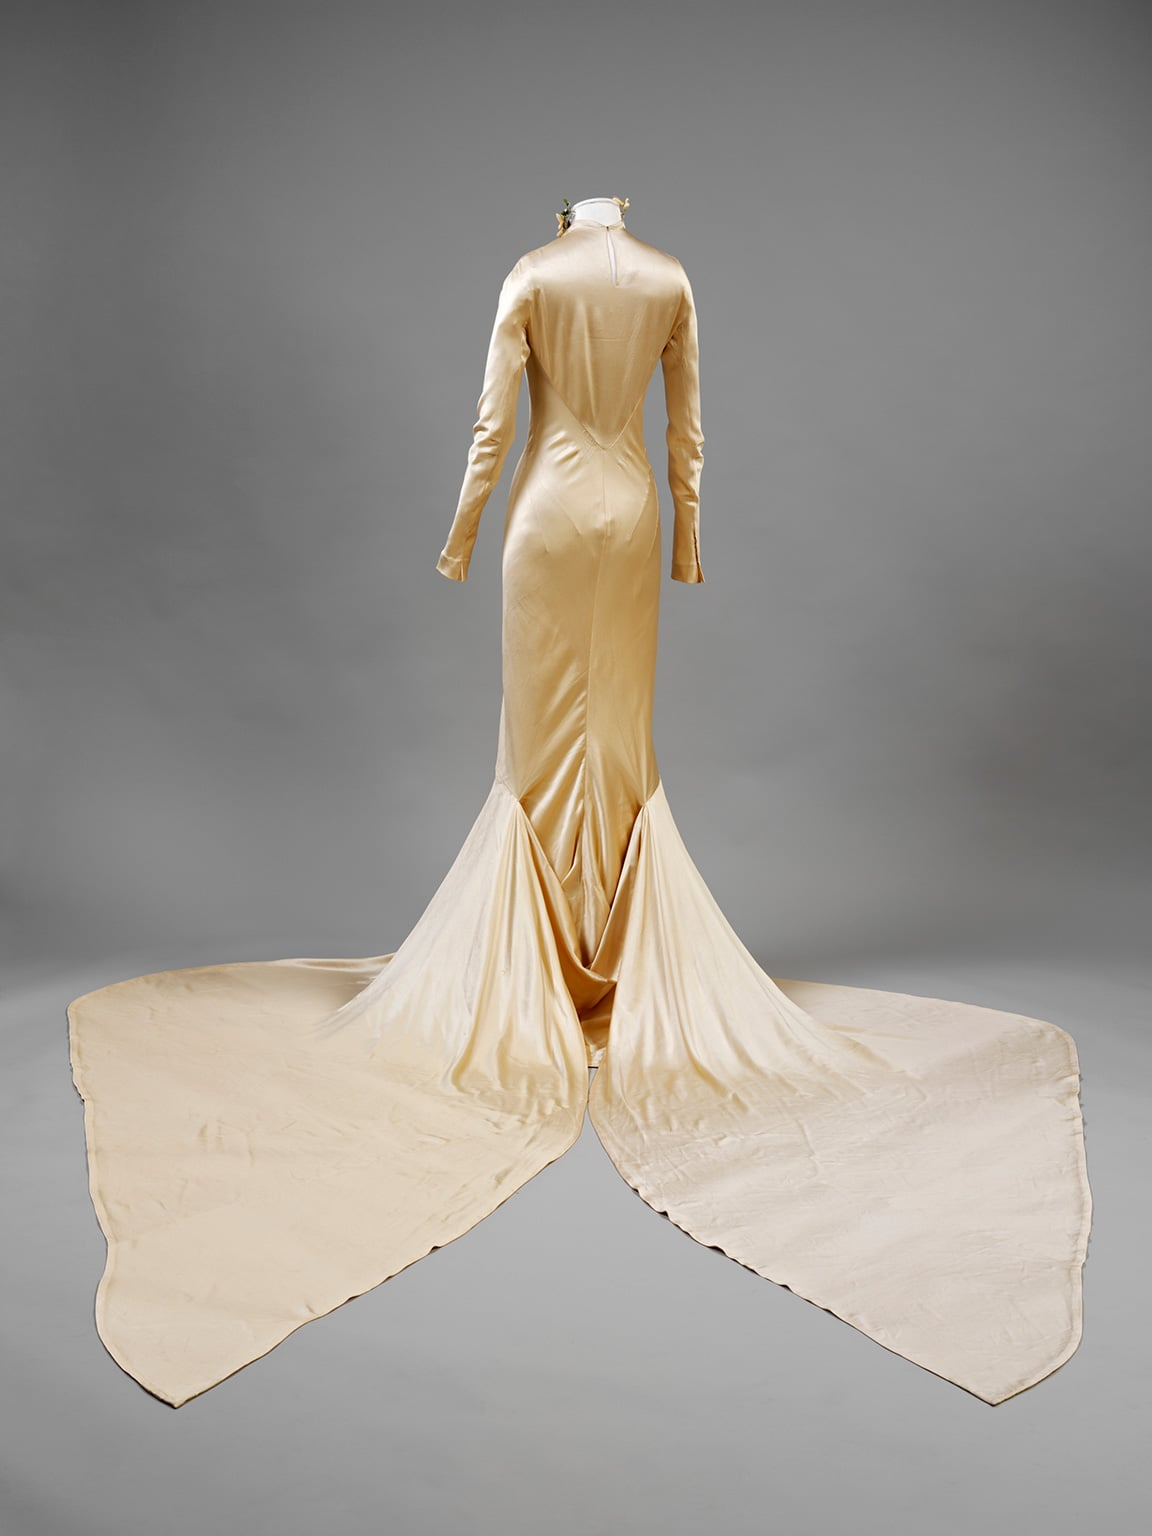 Silk satin wedding dress designed by Charles James, London. Worn by Barbara 'Baba' Beaton for her marriage to Alec Hambro. Given by Mrs Alec Hambro ,1934